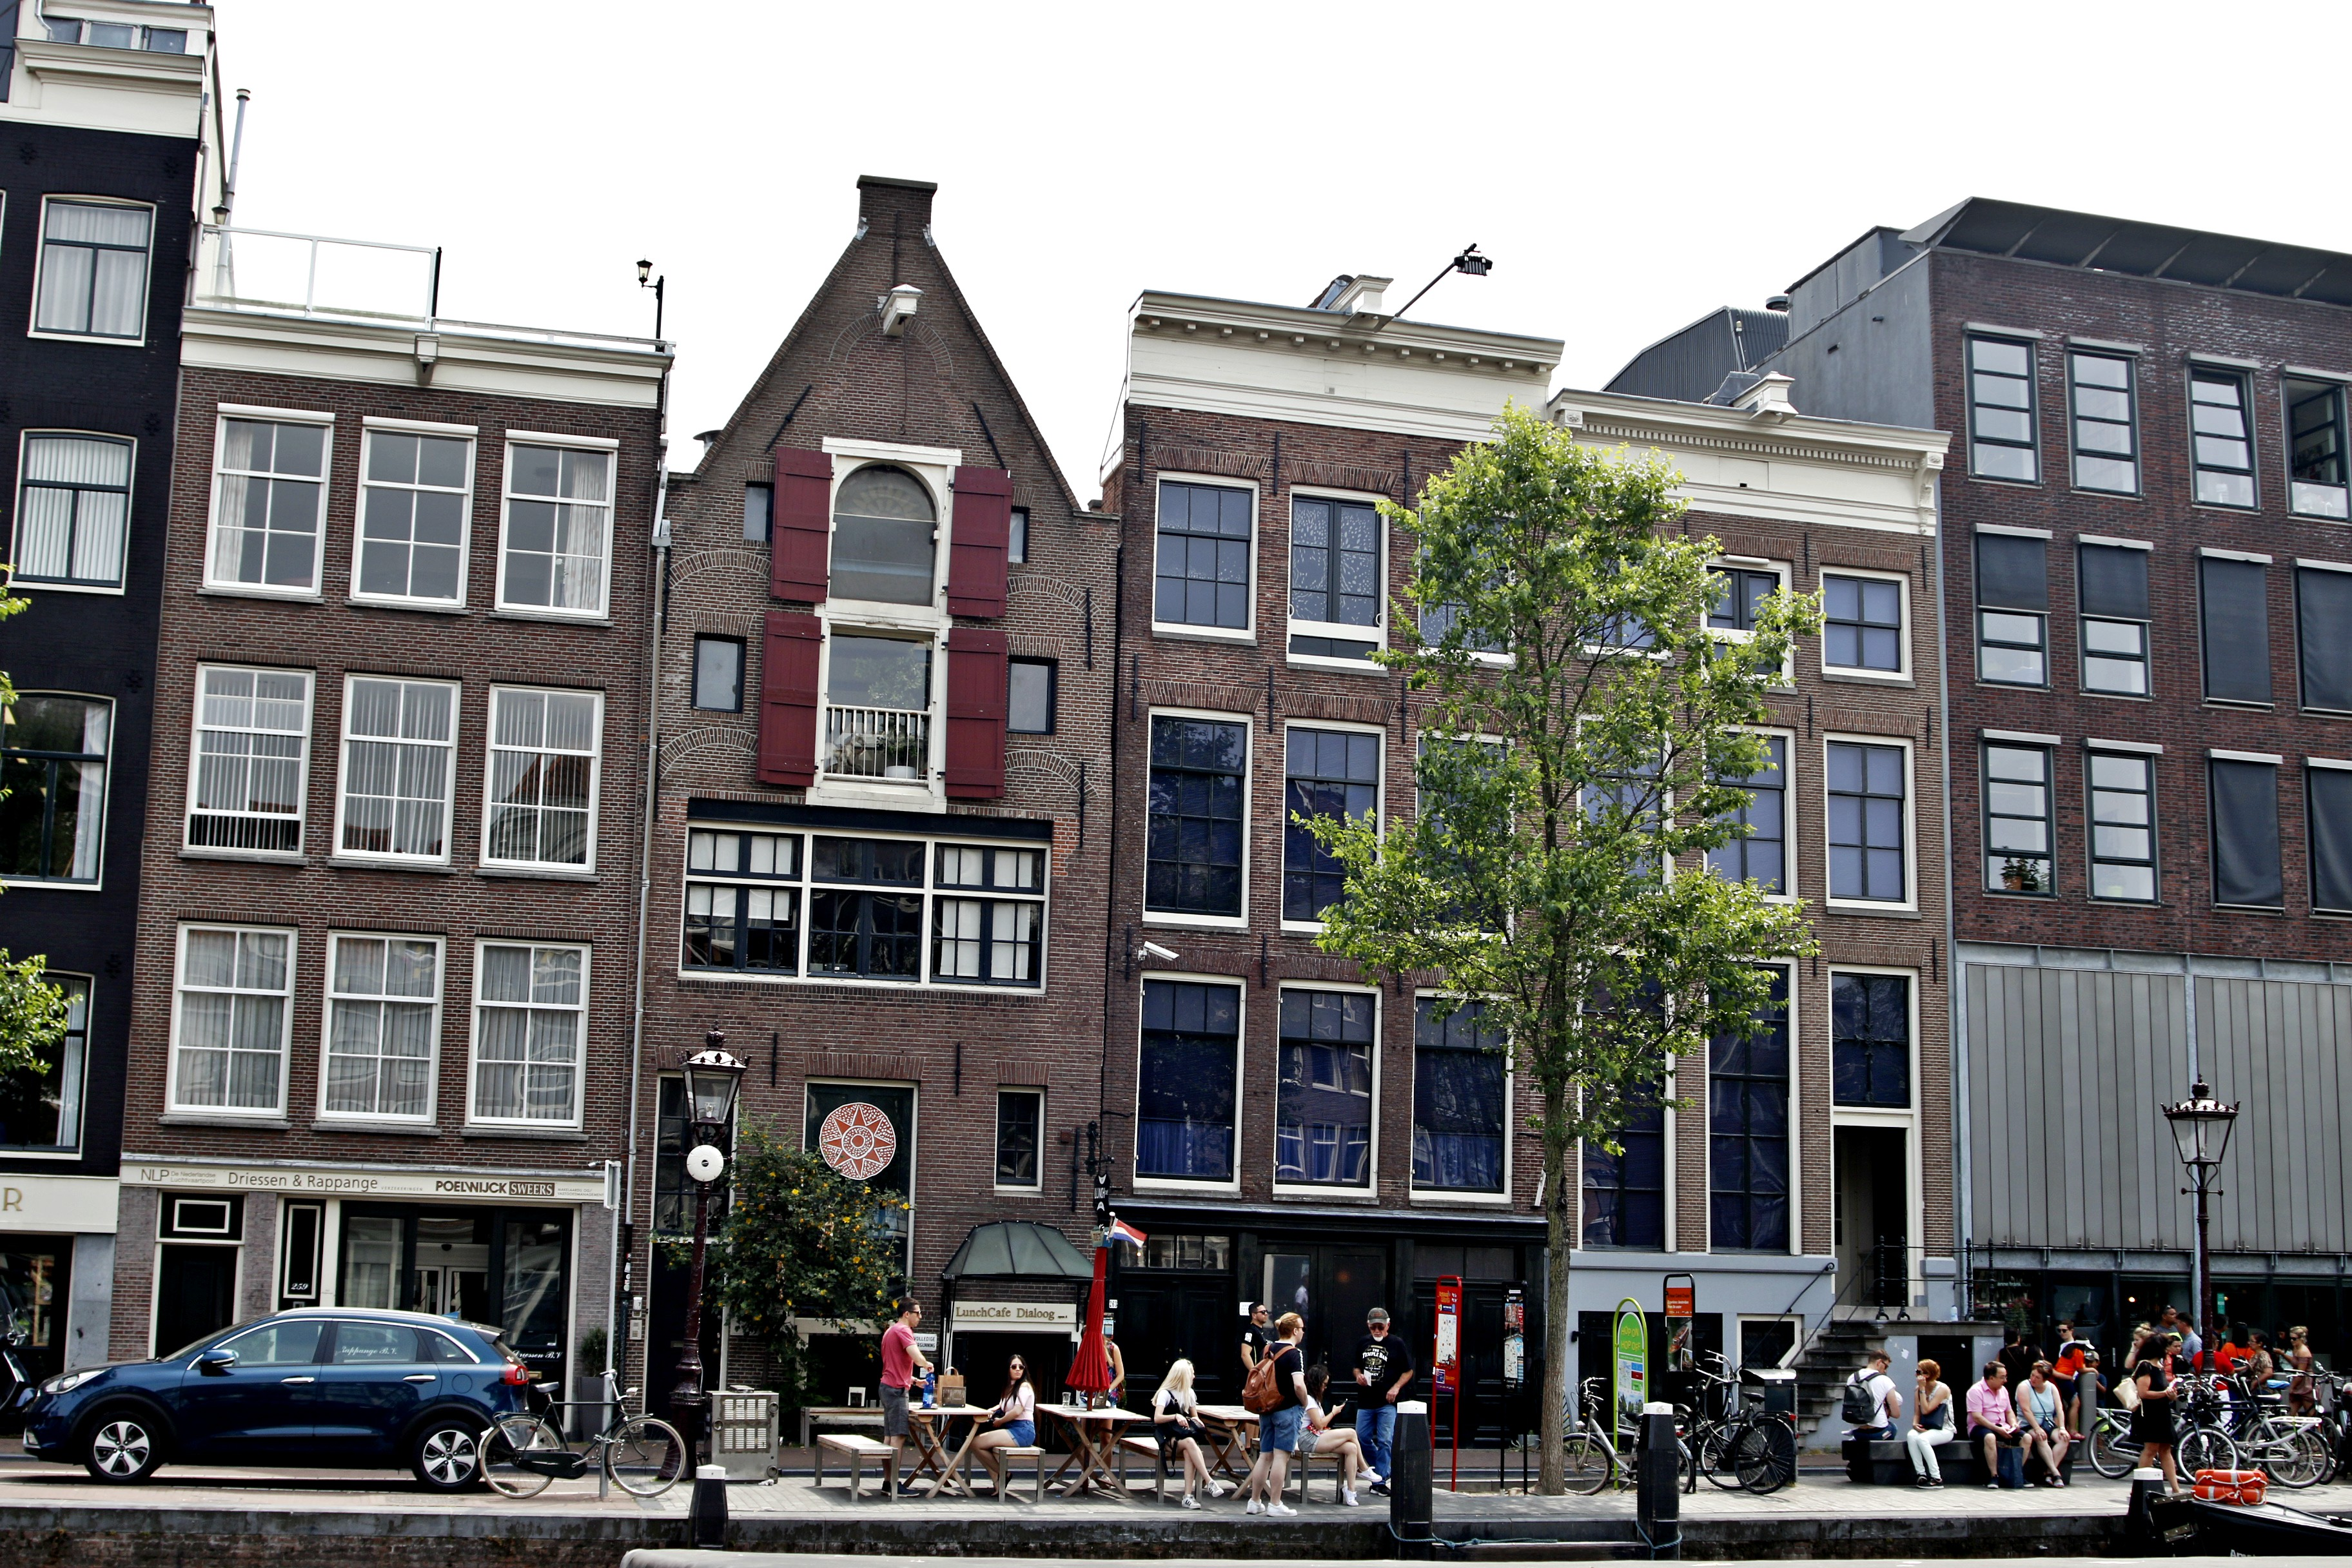 The Anne Frank House, third from the left.